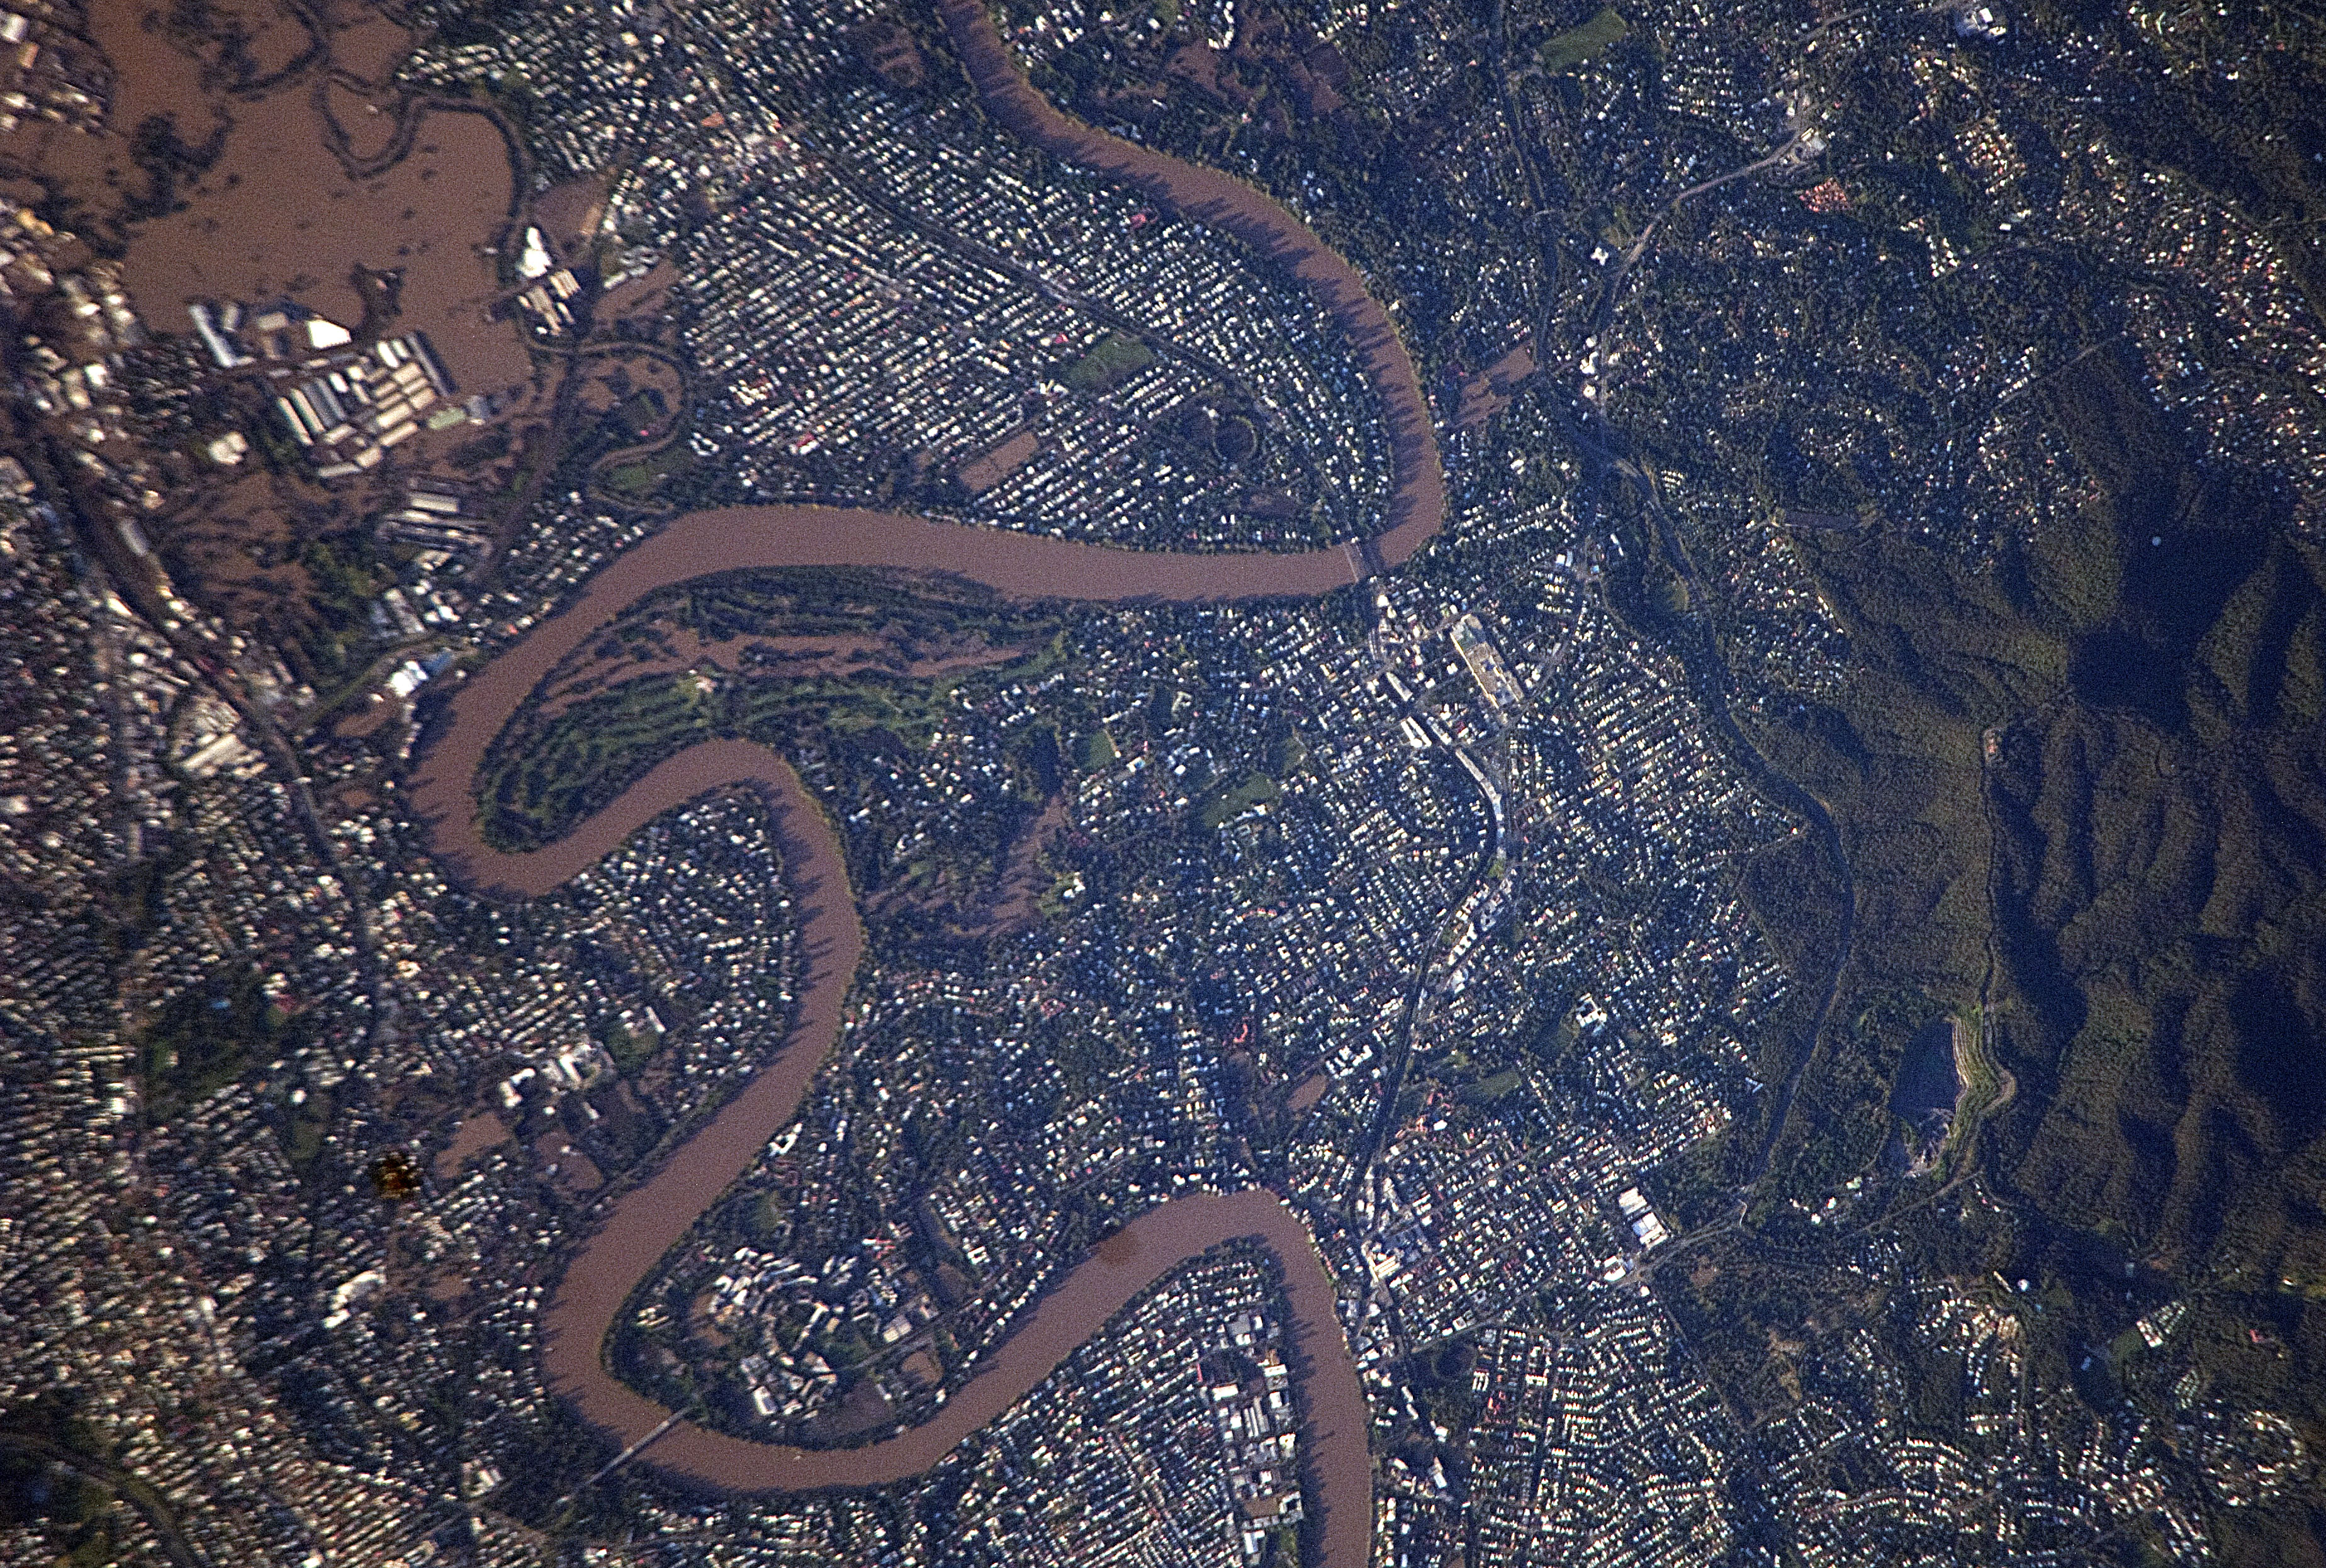 Flooding in Queensland, Australia seen by NASA from ISS